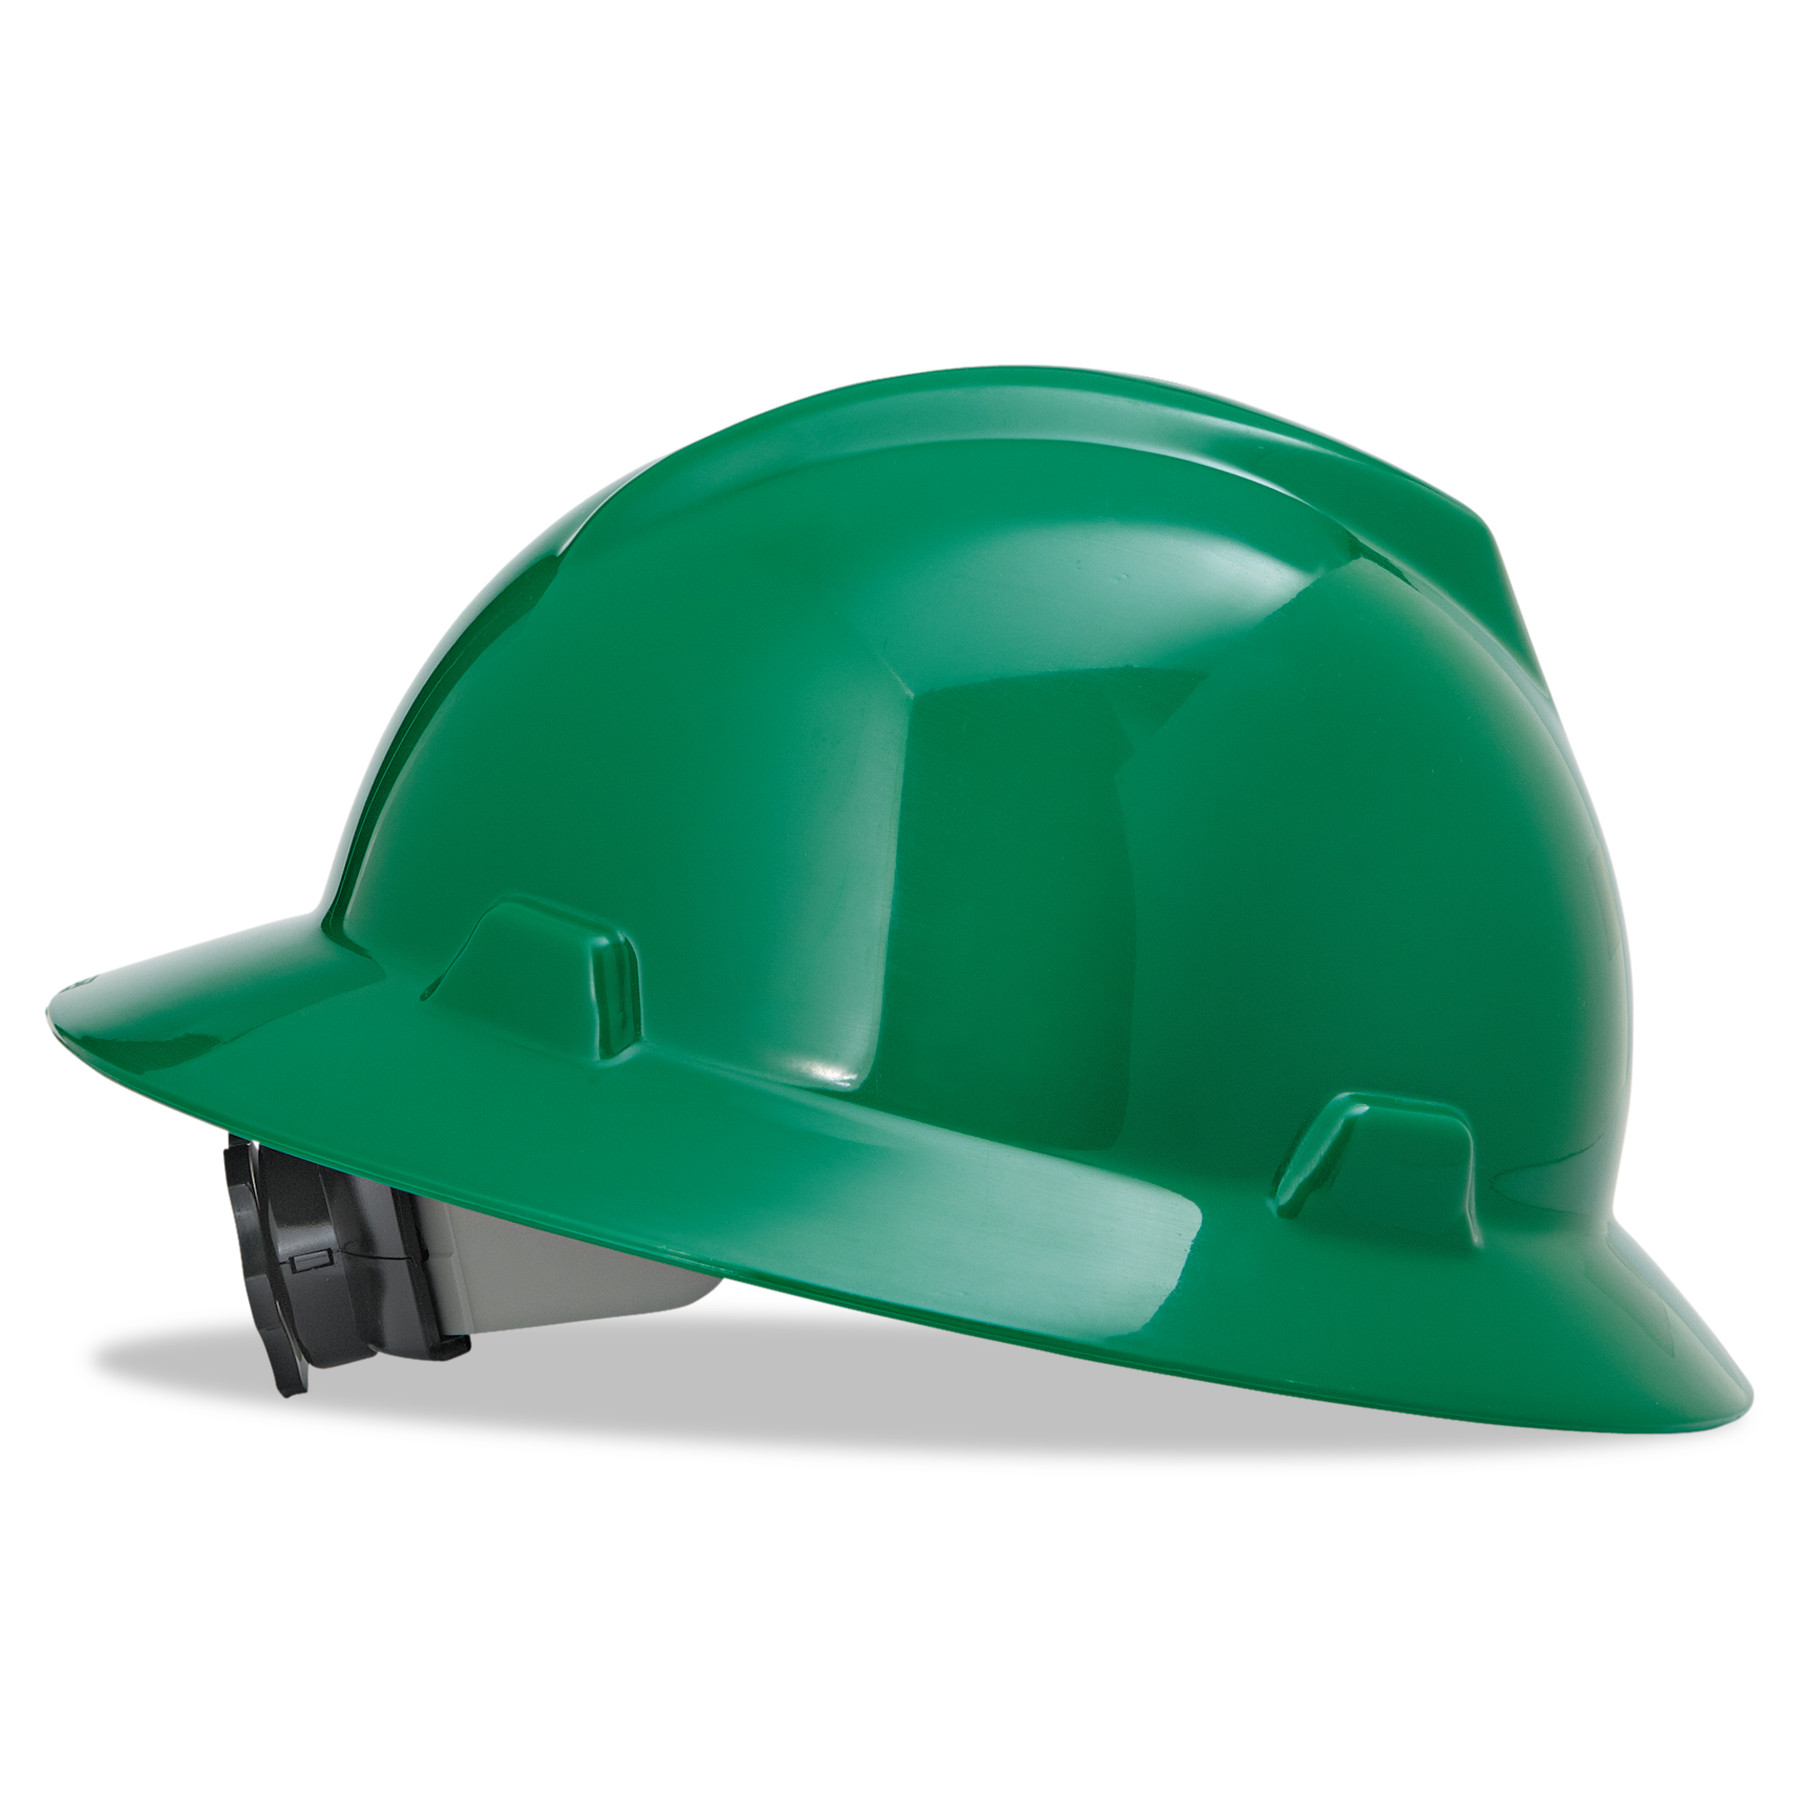 MSA V-Gard Full-Brim Hard Hats, Ratchet Suspension, Size 6 1 2 8, Green by SAFETY WORKS